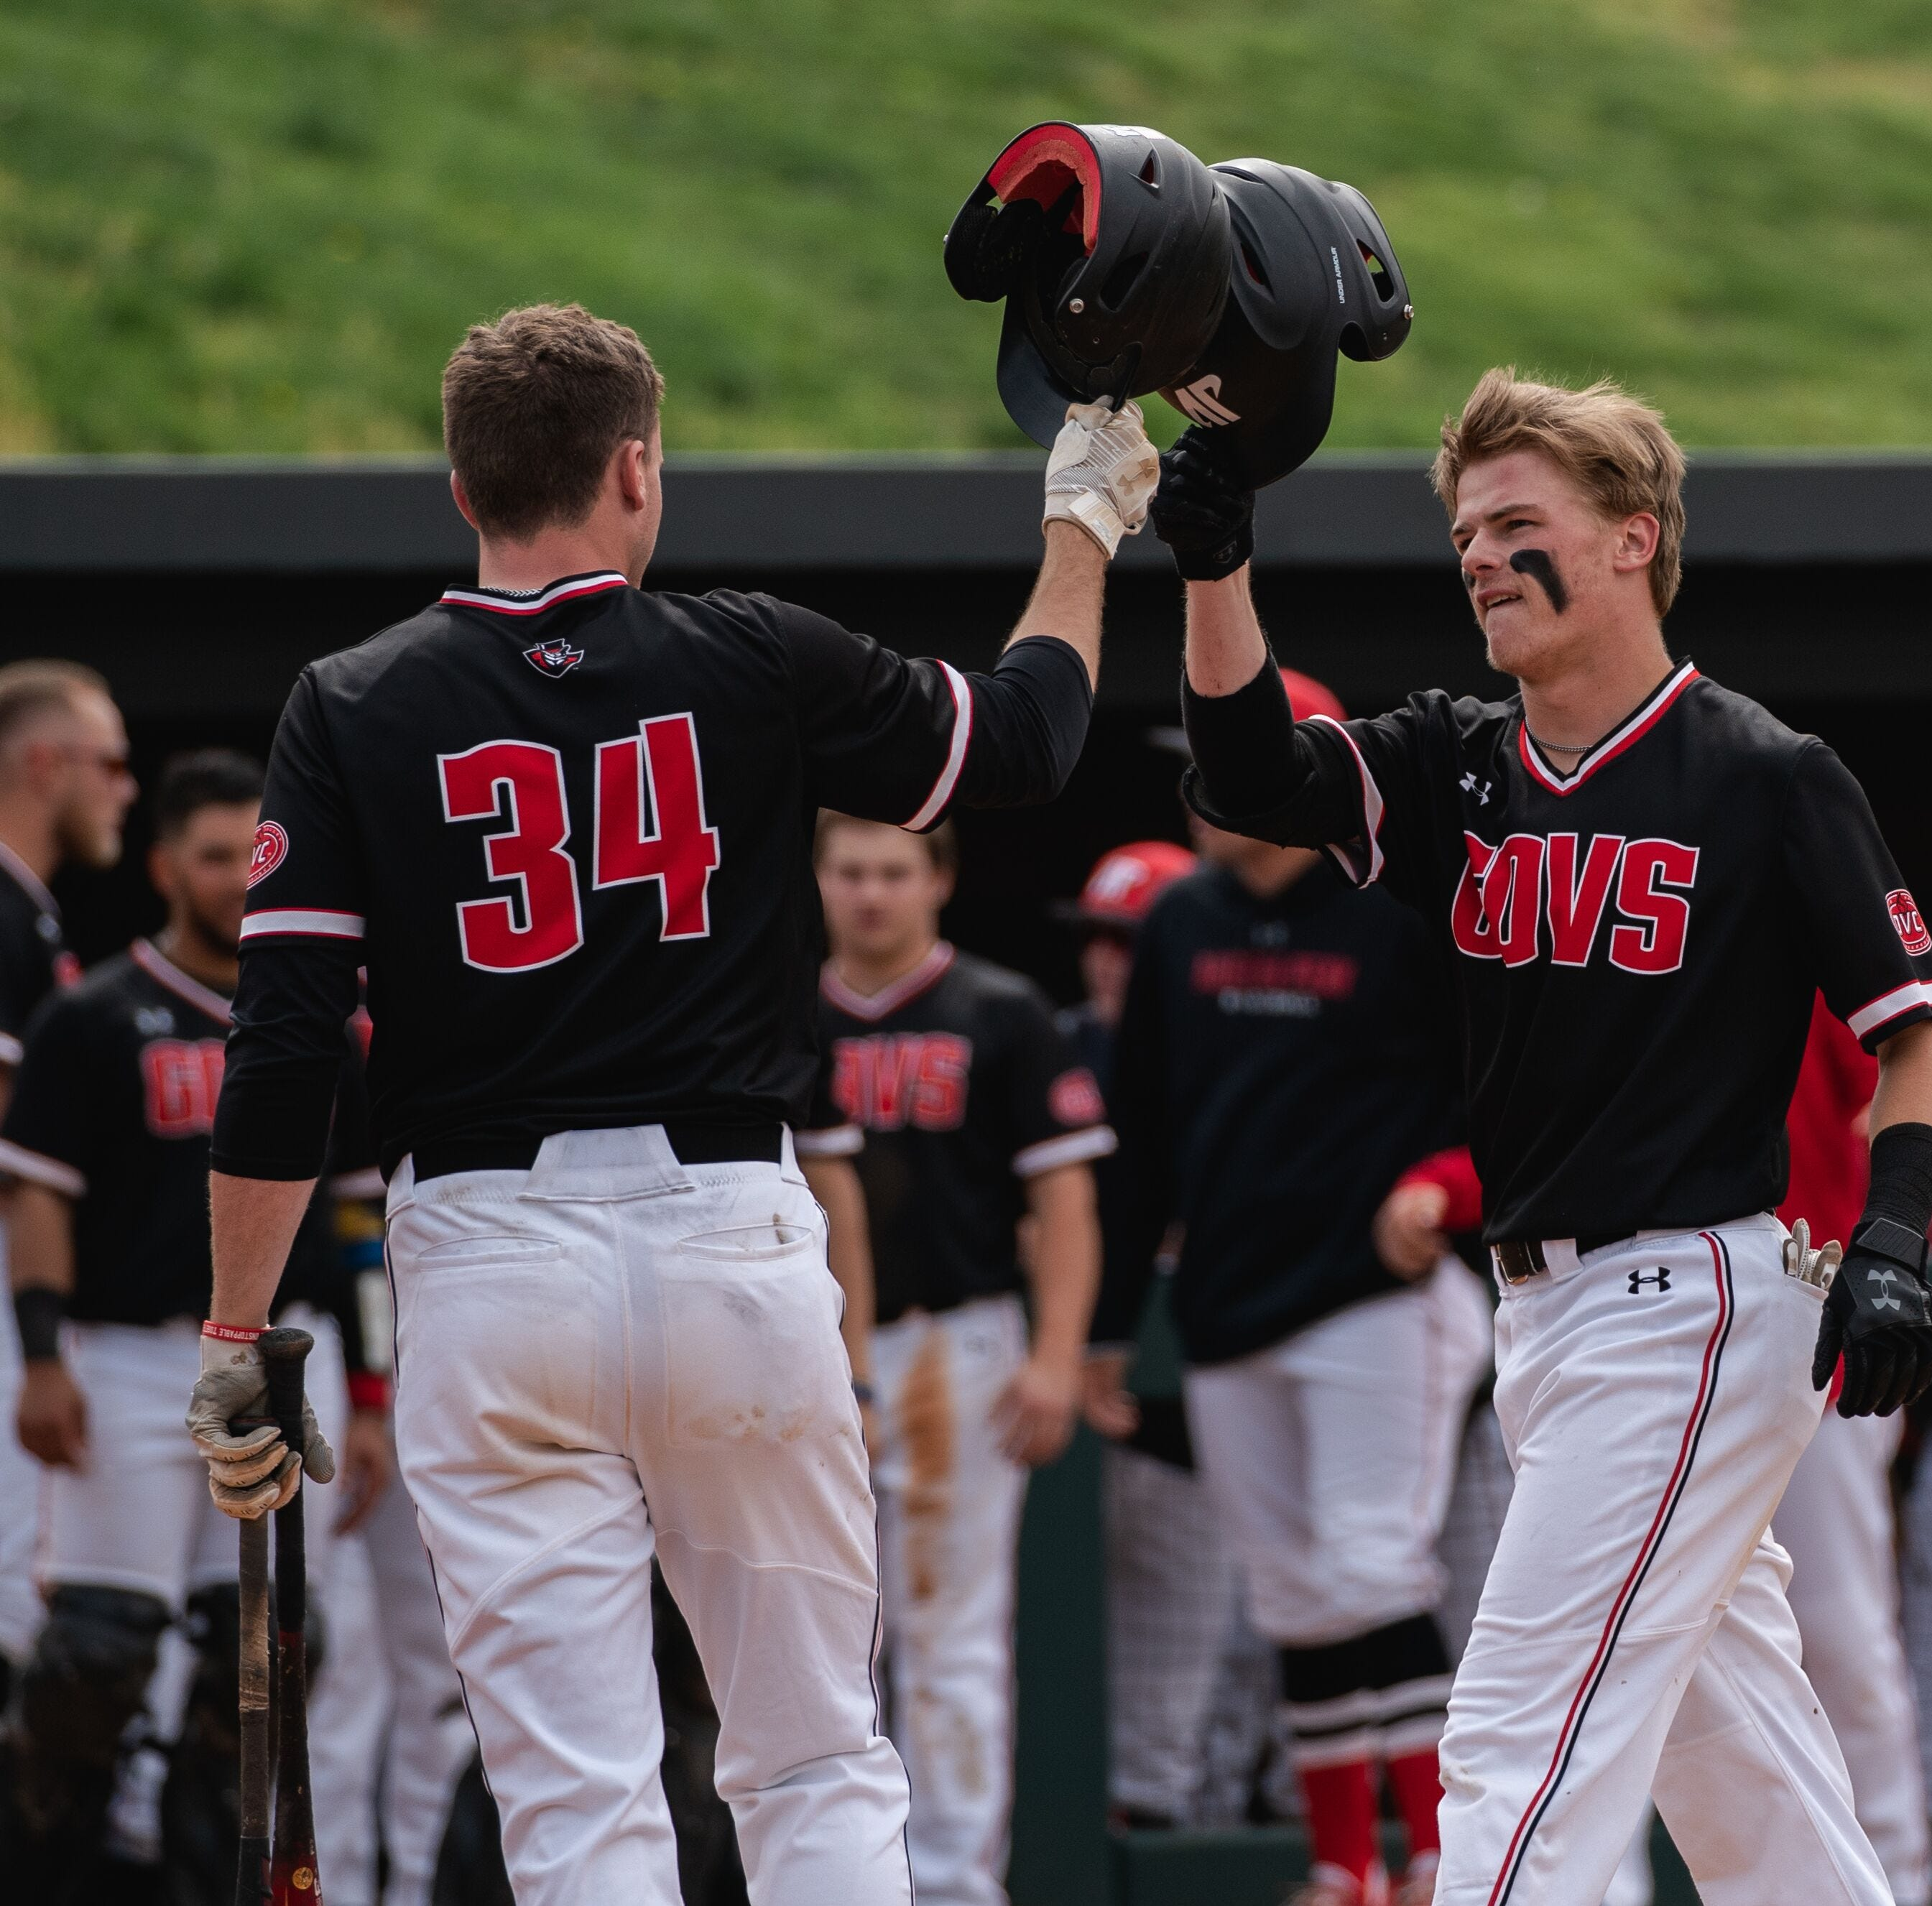 OVC title on line as Austin Peay baseball faces Jacksonville State in critical three-game series